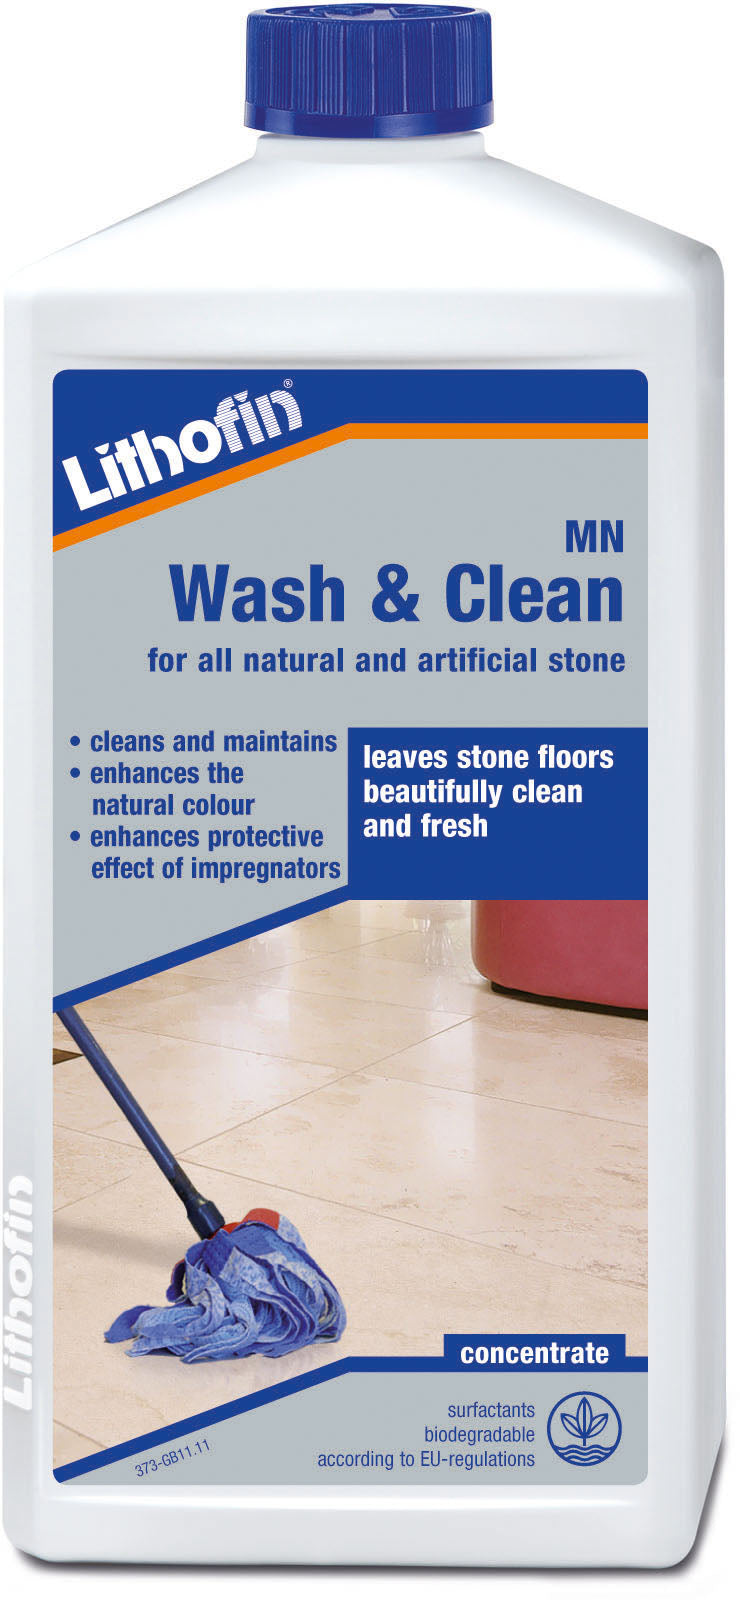 Lithofin wash & clean for all natural and artificial stone